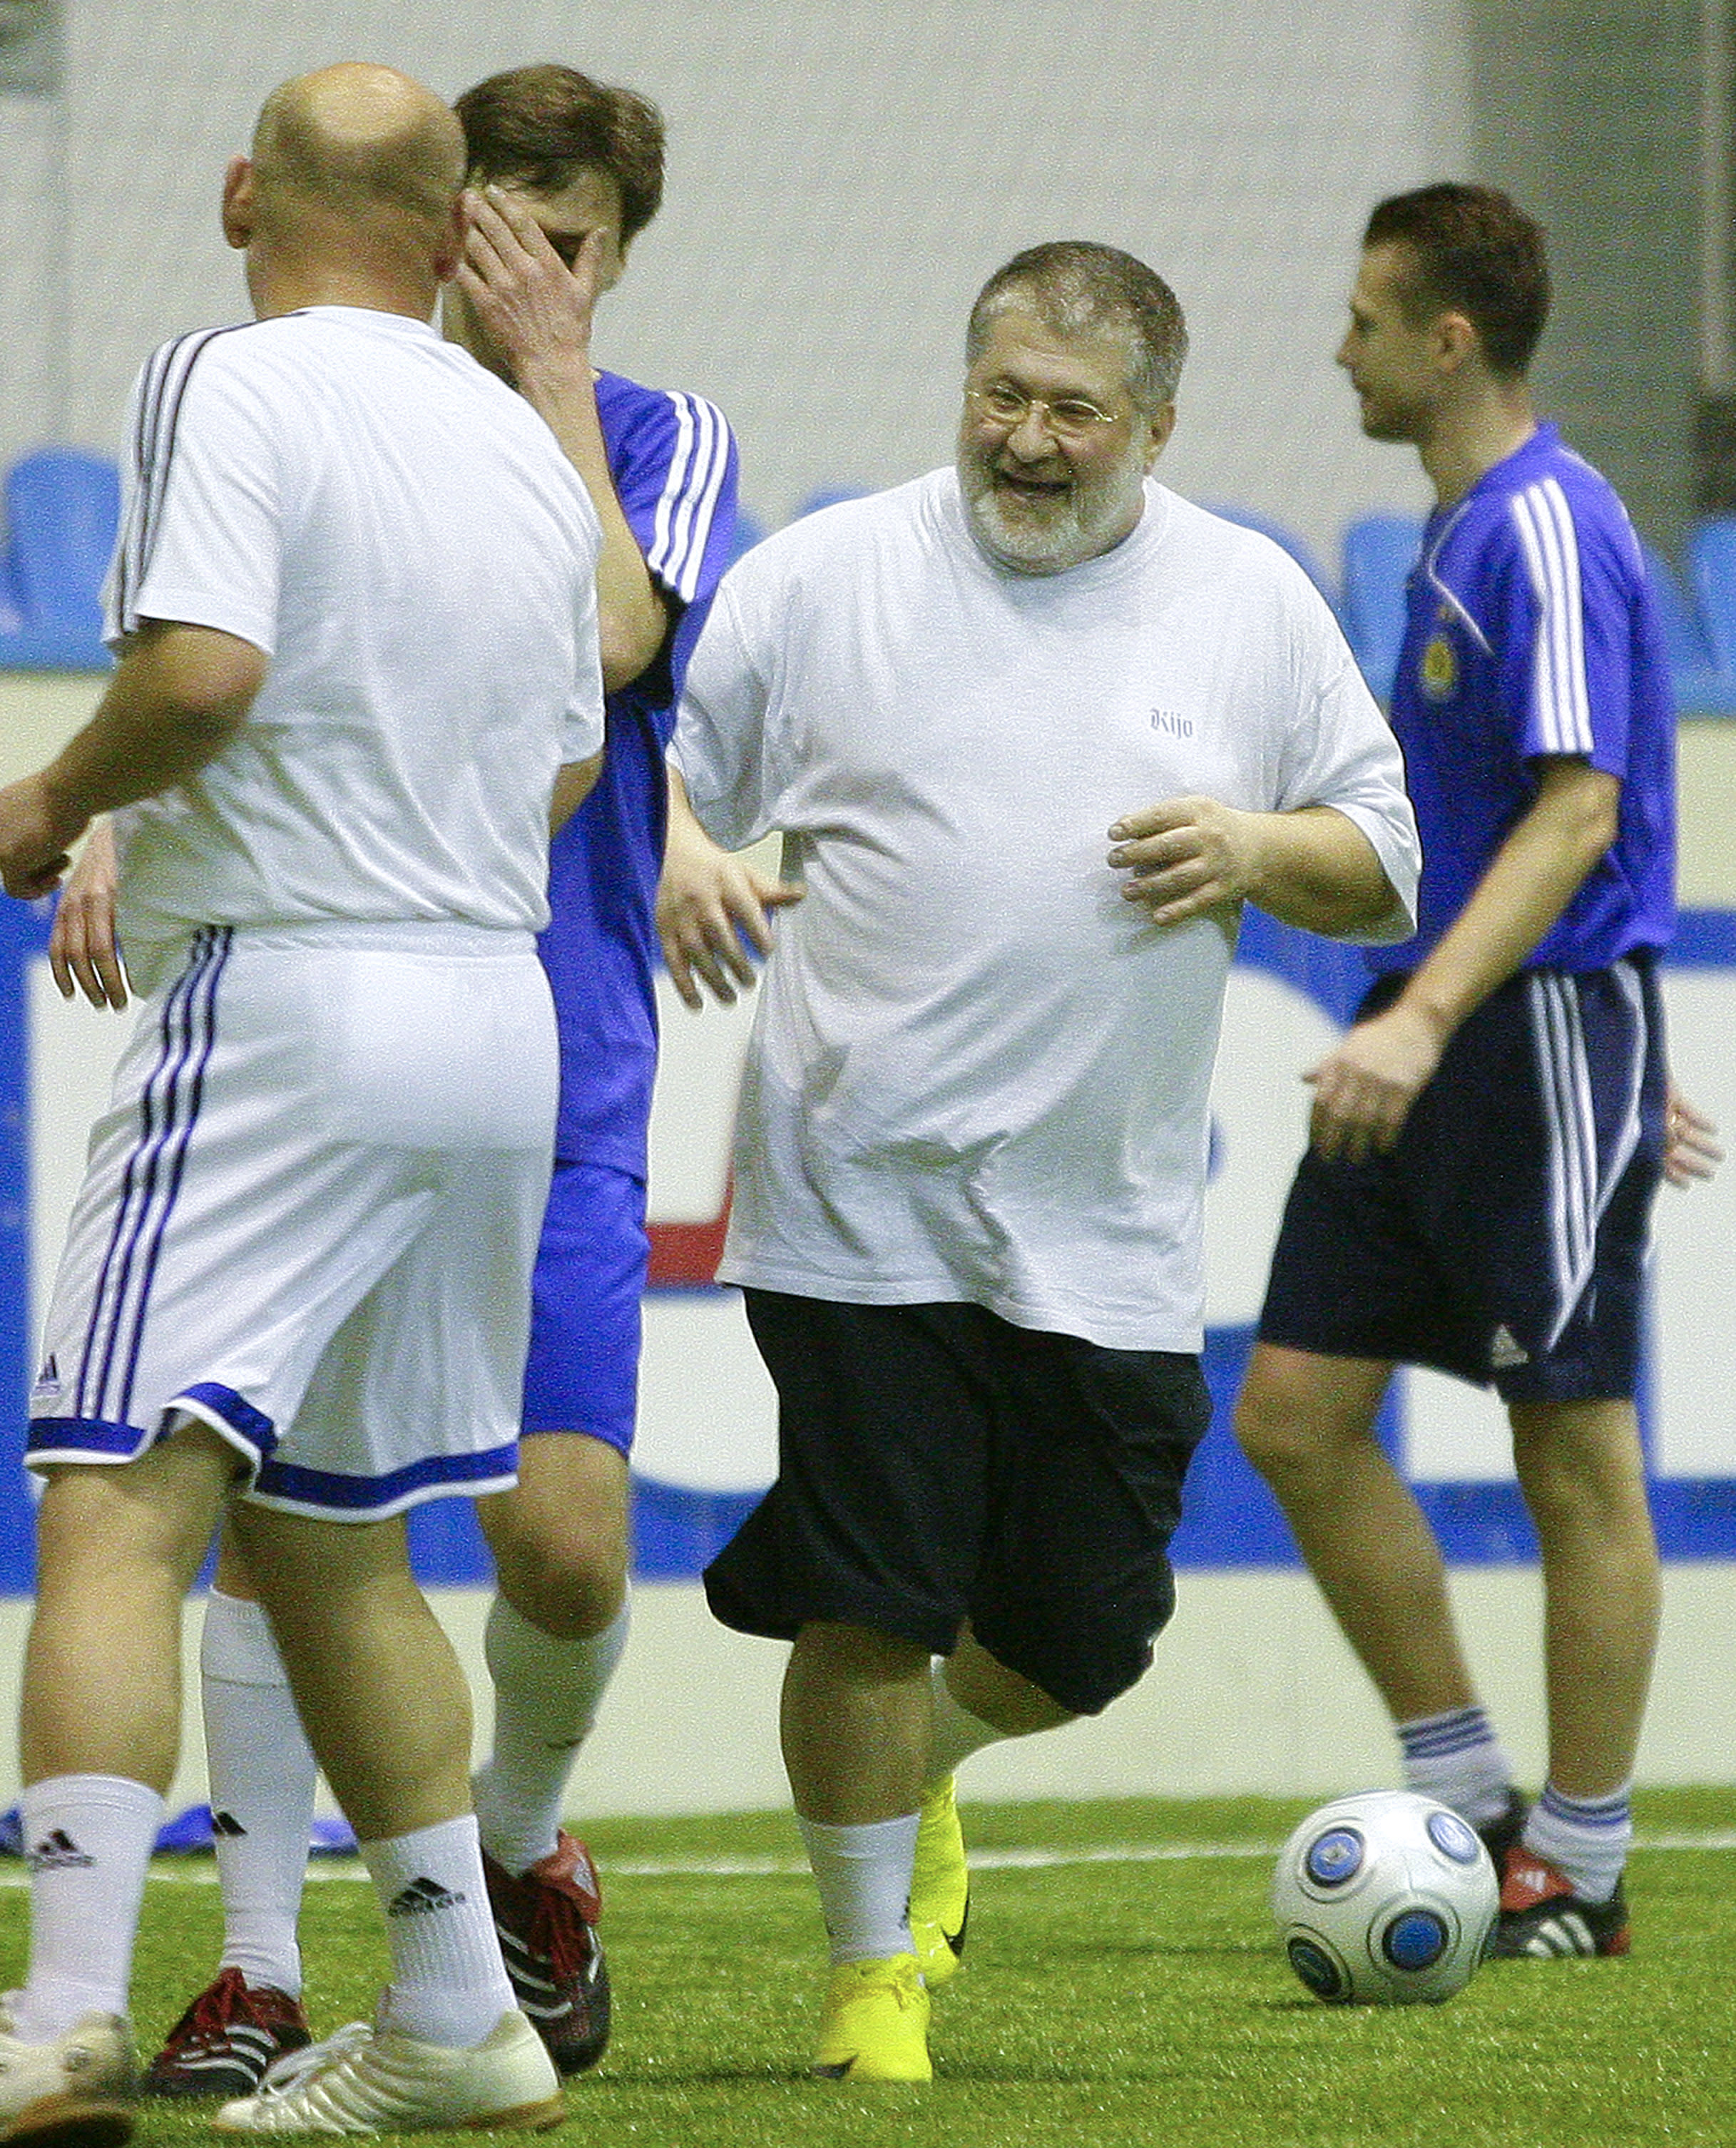 In this photo taken in Feb. 26, 2010, Ukrainian oligarch Igor Kolomoyskiy, center, plays soccer in Kiev, Ukraine. For years, Ukraine's business tycoons have challenged the central authorities in Kiev, fighting, plotting and scheming to enlarge and maintain their multimillion-dollar empires. But when President Vladimir Putin's troops invaded the pro-Russian strategic Black Sea peninsula of Crimea and held massive military exercises near the border with eastern Ukraine, the country's richest men put their rivalries aside, rallied behind the new government in Kiev and took up governors' posts in the east of the country to counter possible Russian aggression there. (AP Photo/Andriy Lukatsky)